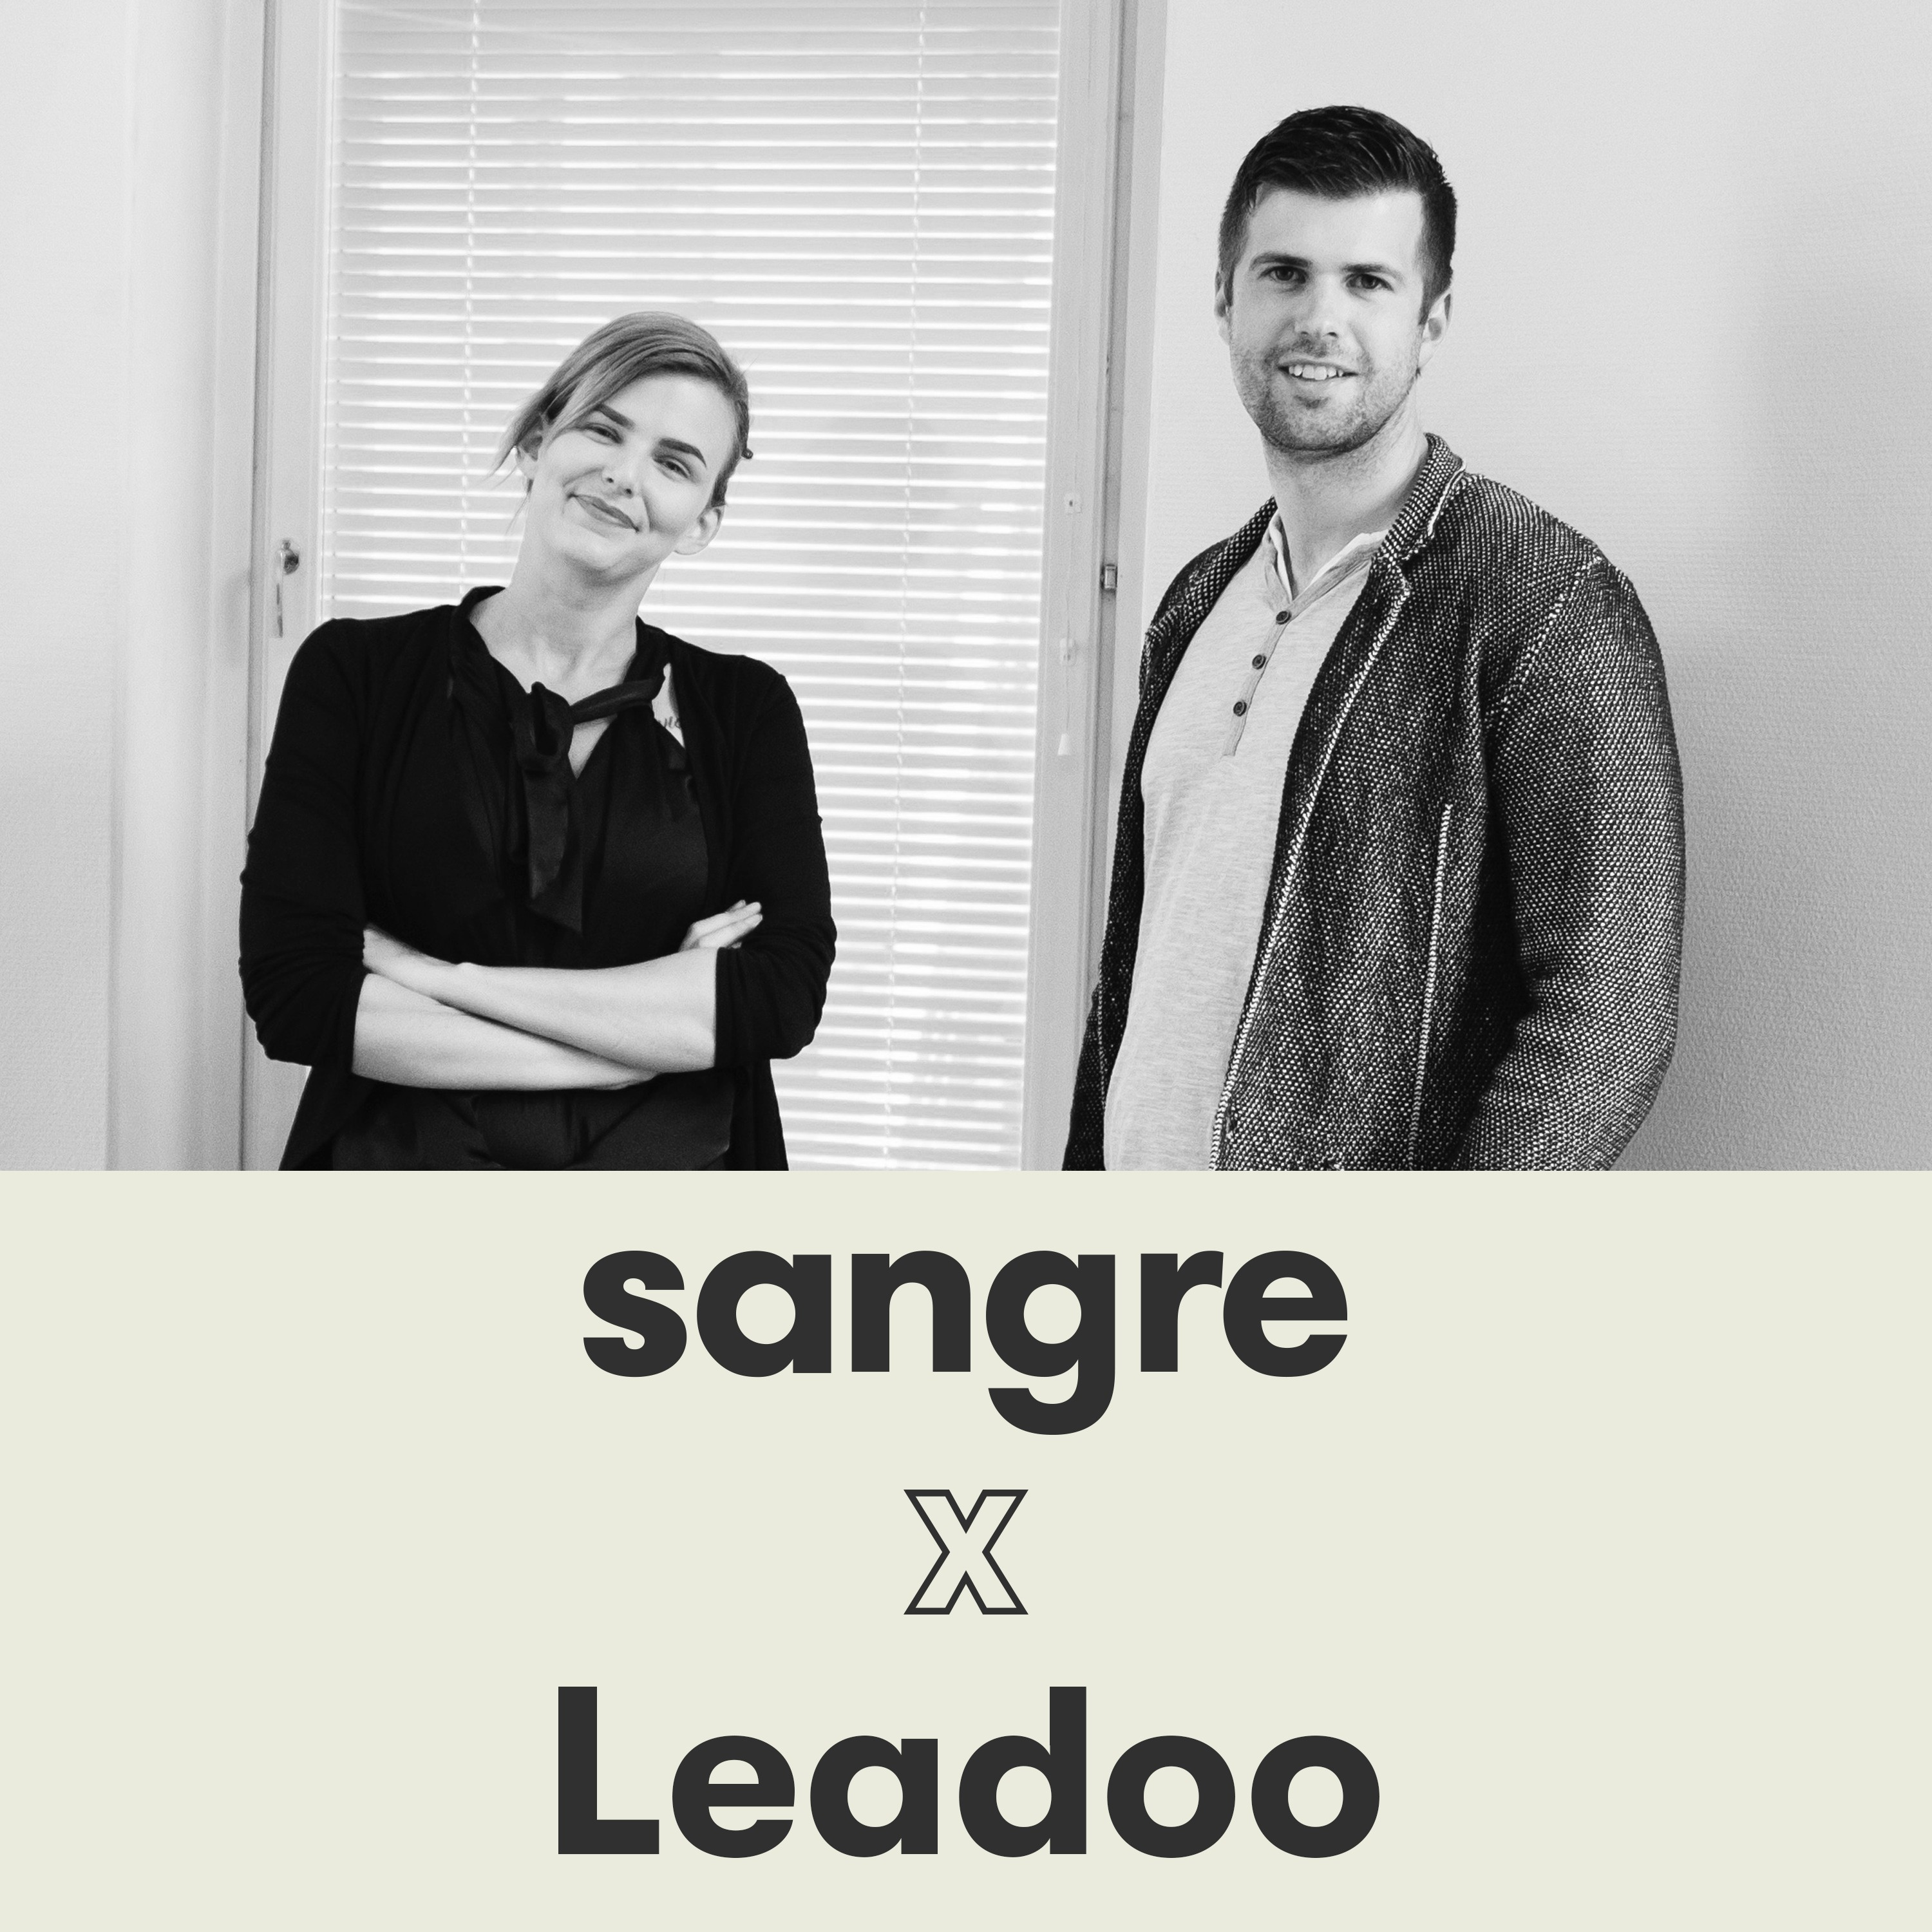 Sangre x Leadoo: Designing human-like interactions with chatbots